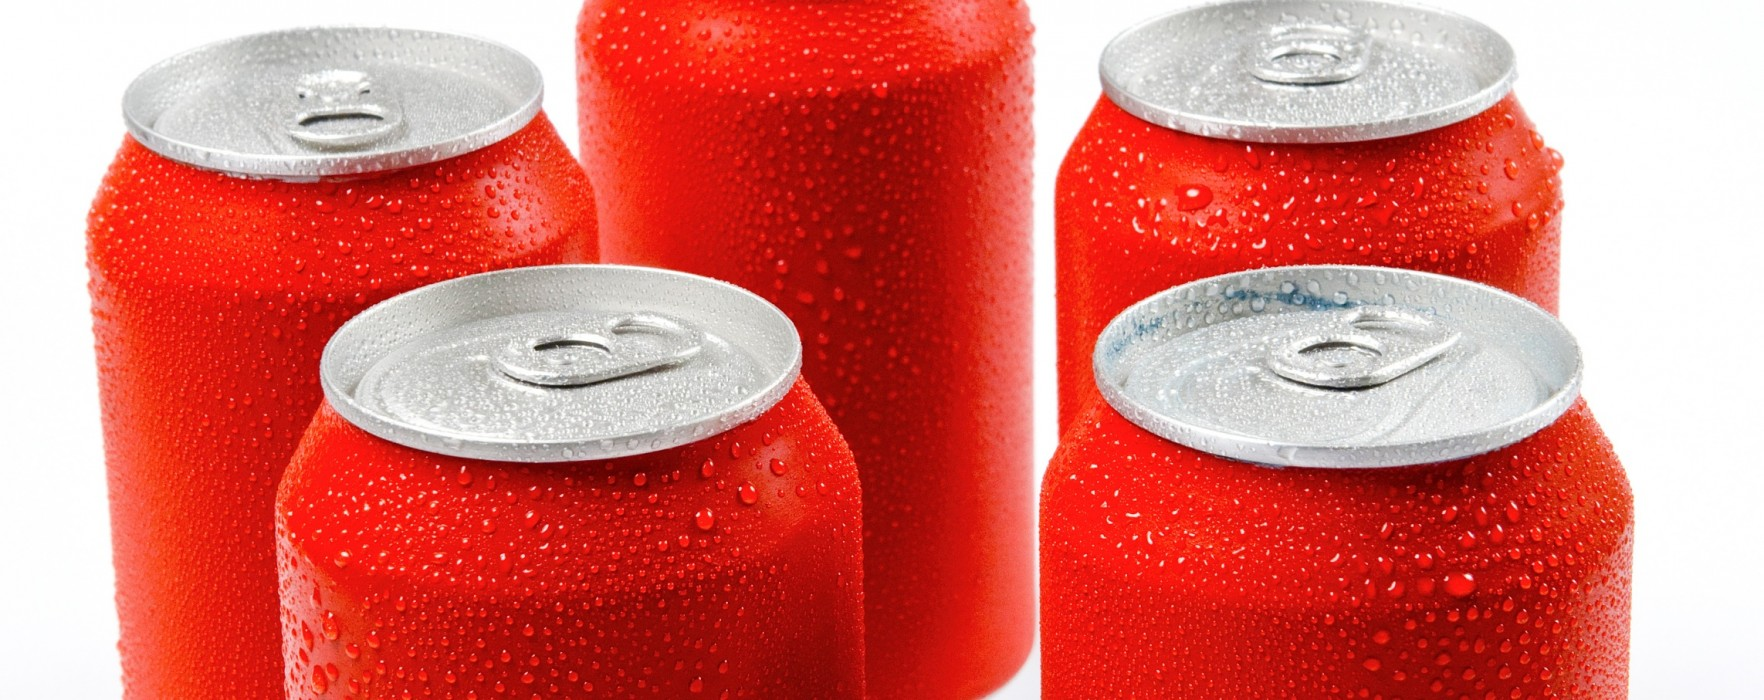 Coca-Cola Attempts to Guide Obesity Research